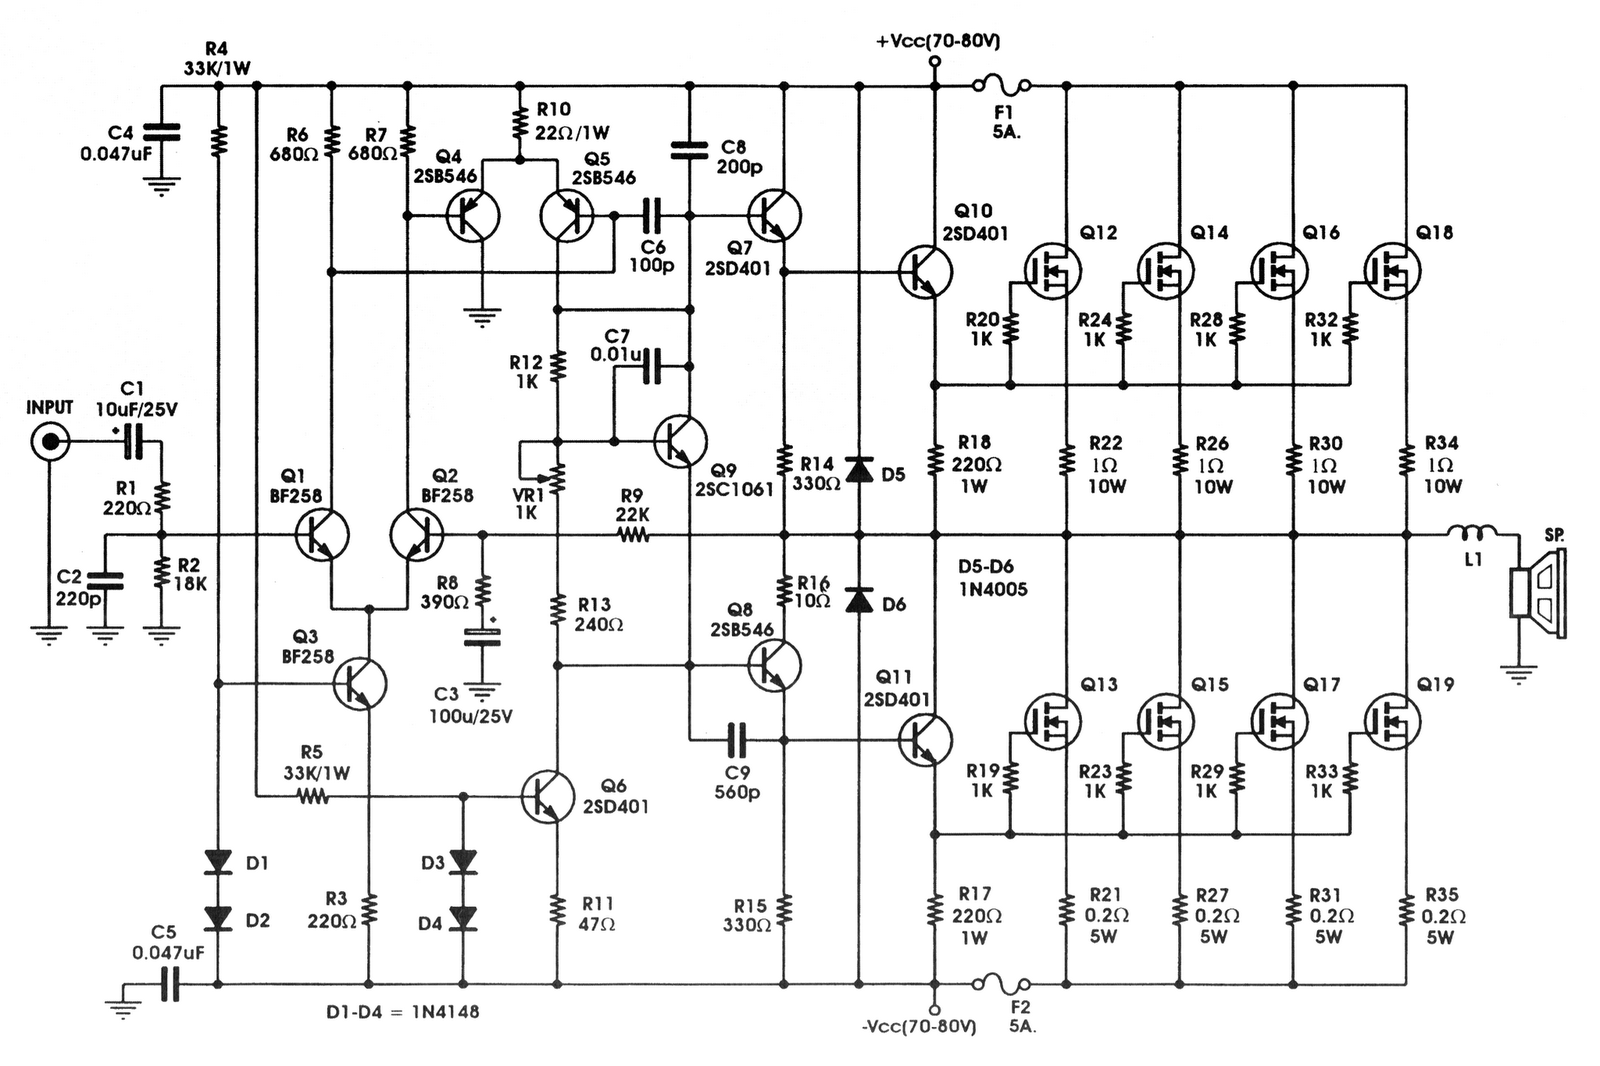 400watt Power Output High Mosfet Amplifier In 2018 Hubby Circuitsaudio Circuit Diagram Electronic Schematics Diy Electronics Projects